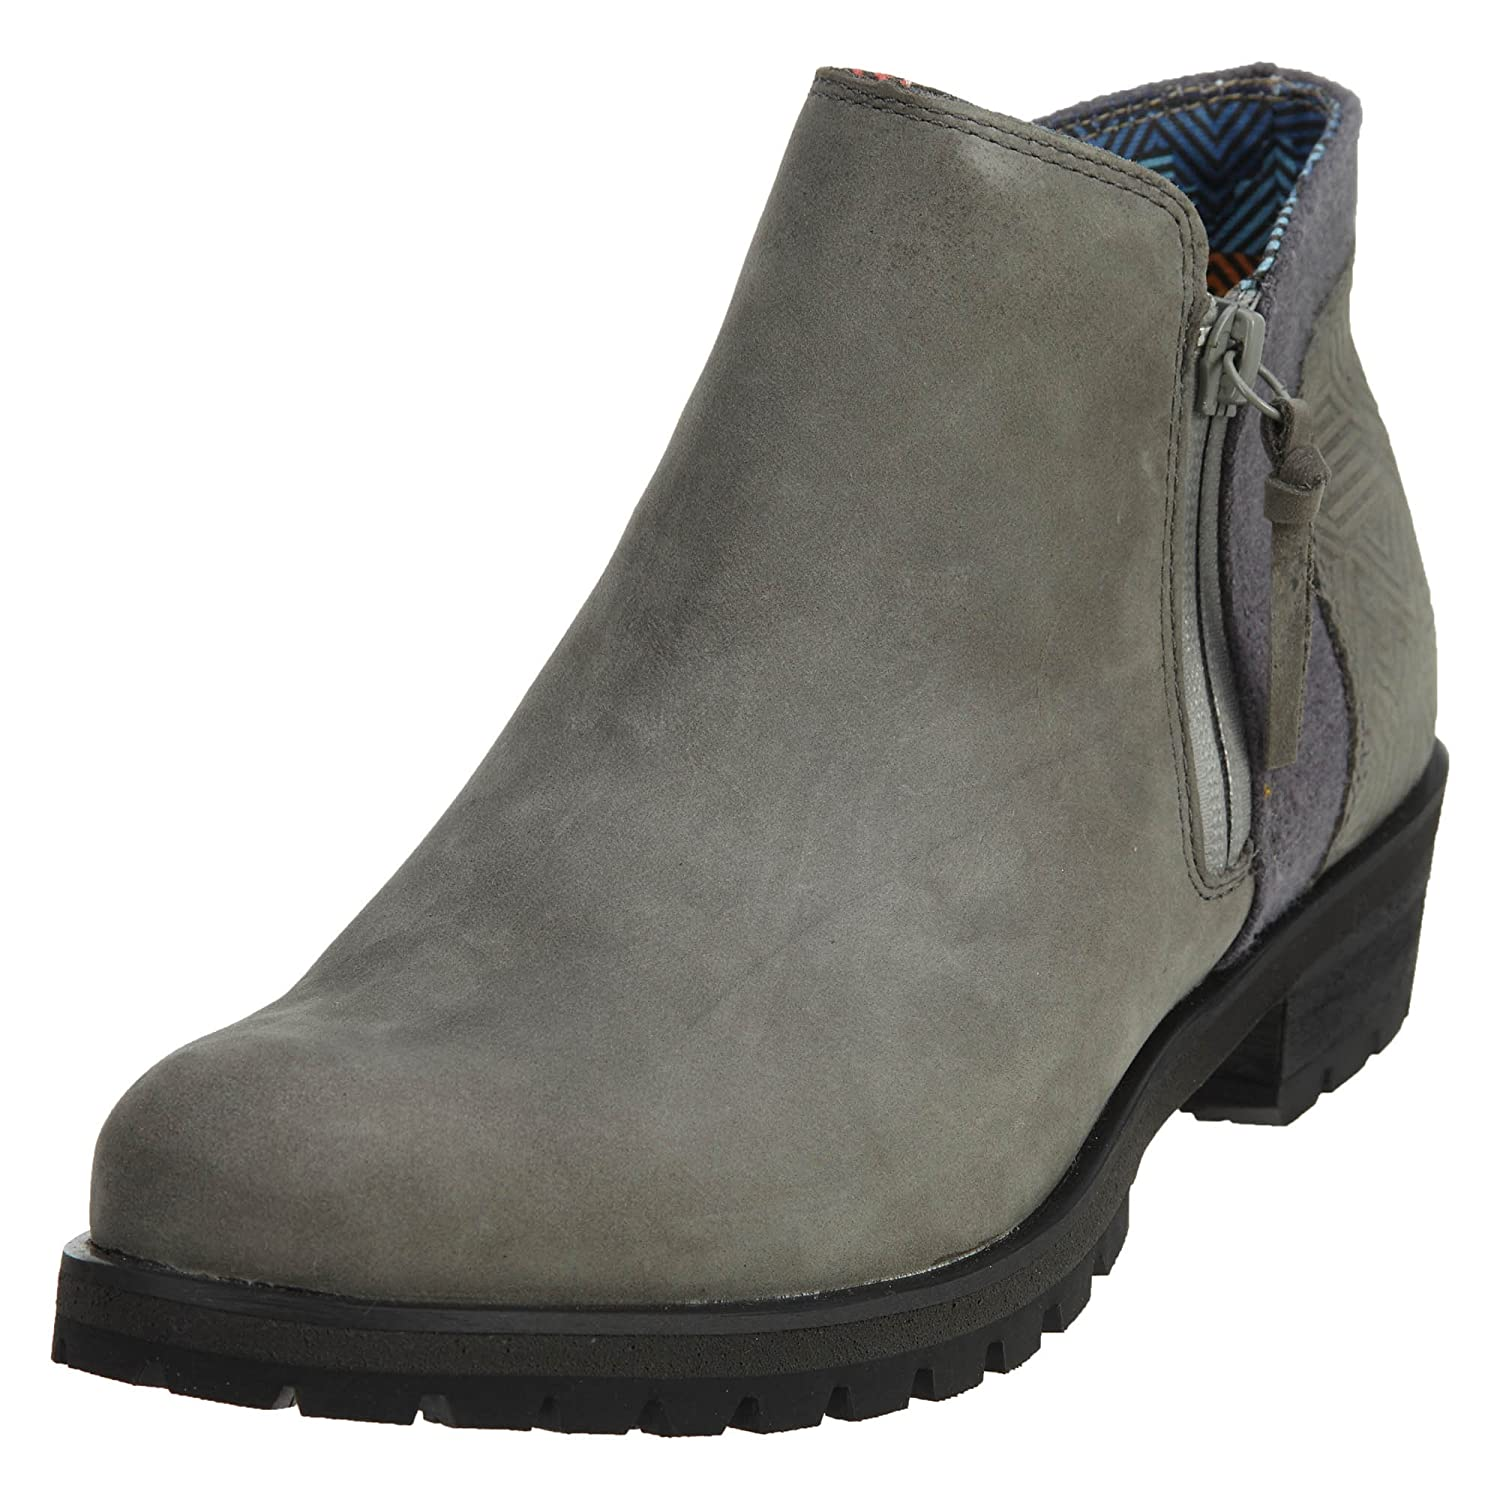 The North Face Womens Bridgeton Bootie Zip B01N6IM5RW 10 B(M) US|Dark Gull Grey/Tnf Black (Prior Season)